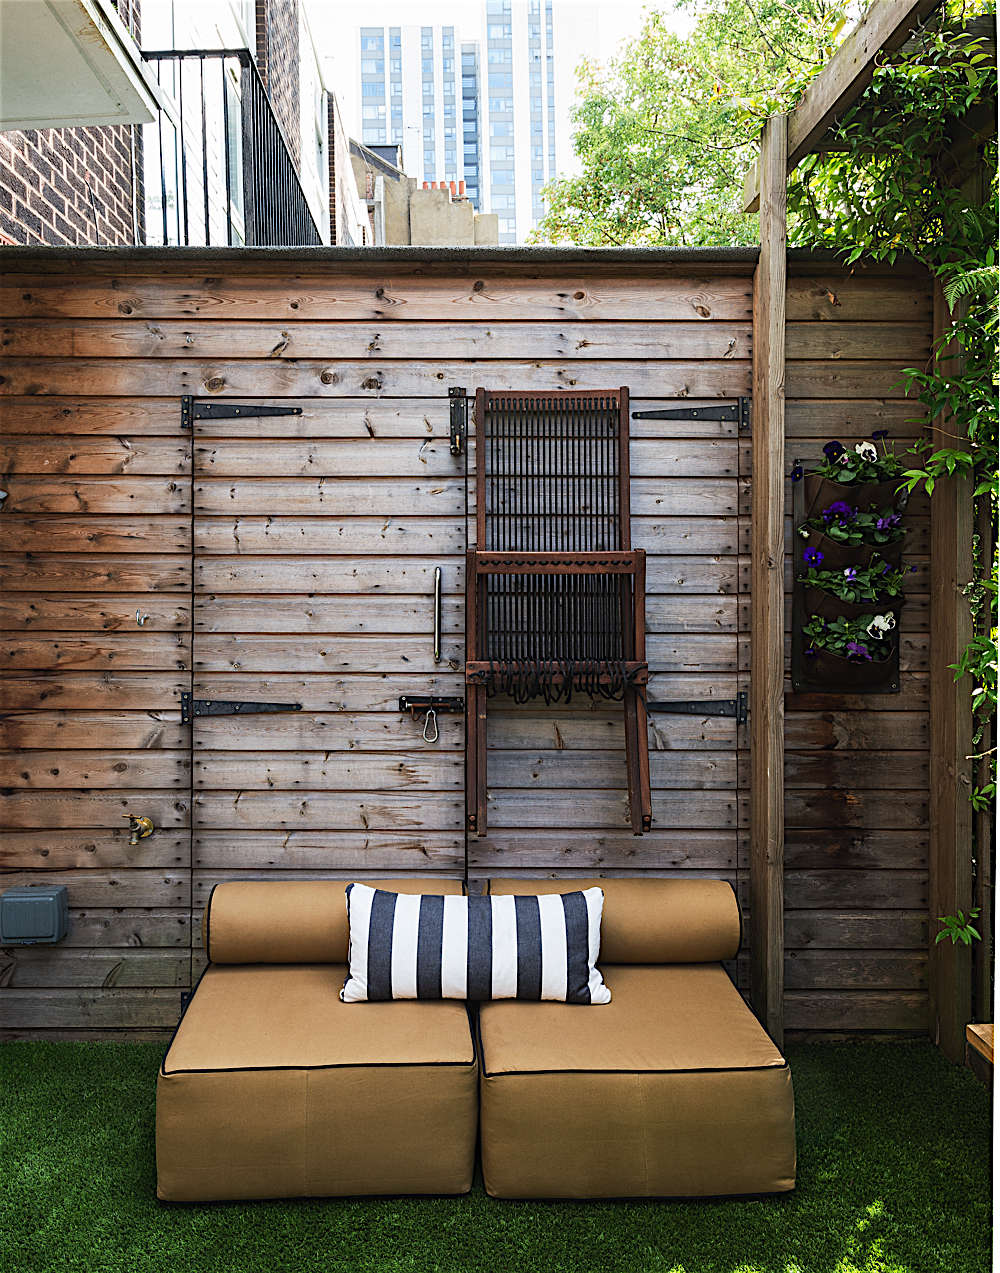 I designed simple outdoor sofas from foam blocks and had them covered with Dyed Cotton Duck with a showerproof finish from Russell & Chapple. When it rains and during the winter, the sofas move into the sheds.